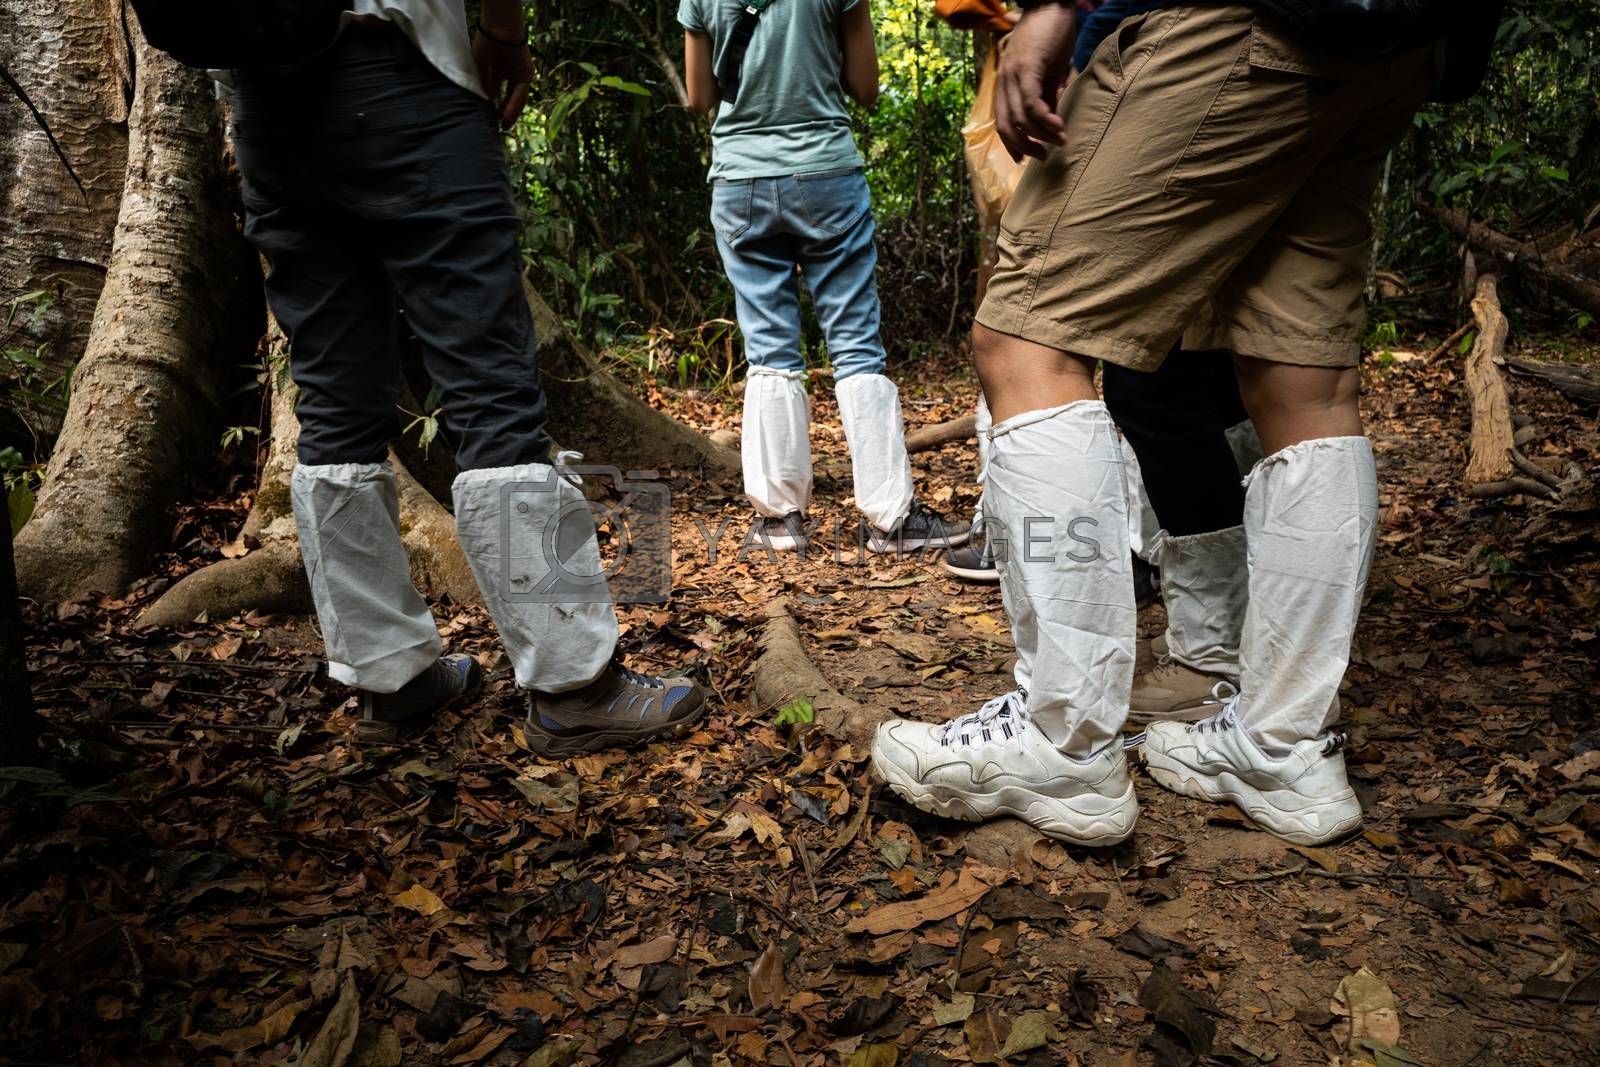 Legs of asian hikers covered by white long socks on tropical forest trekking trail to protect legs from injury and leeches on wet ground.